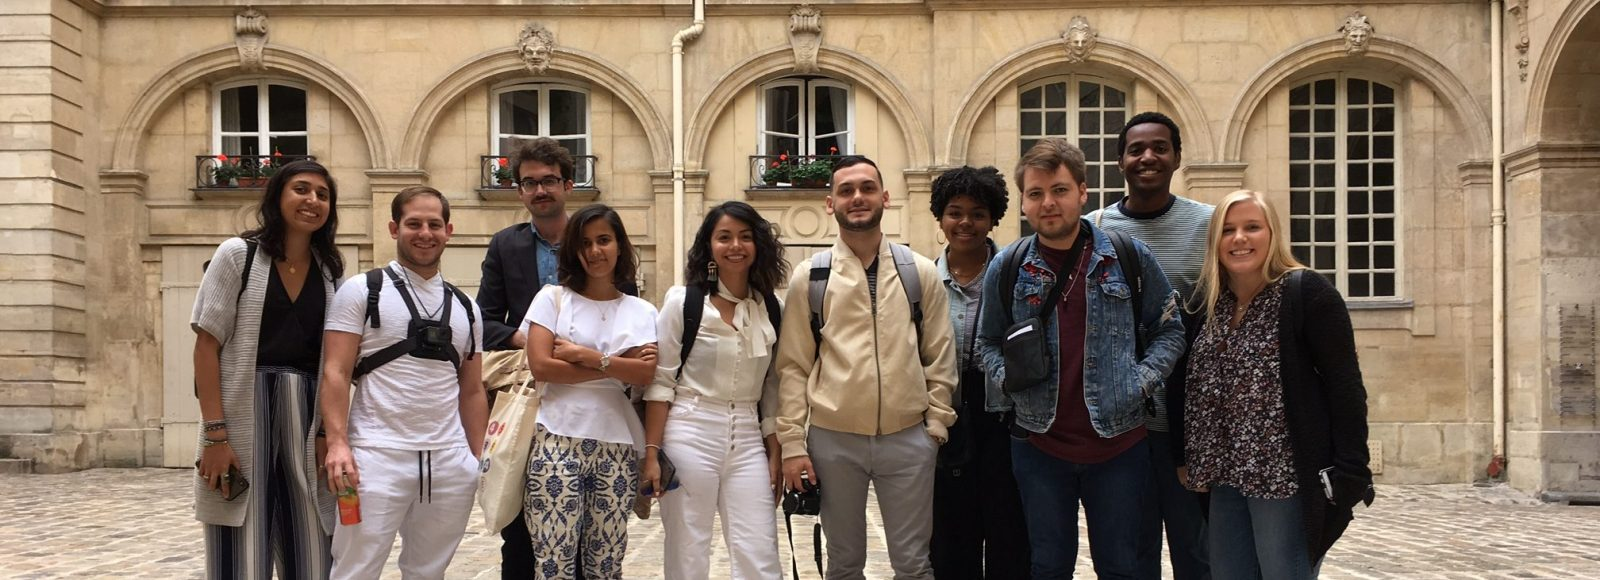 Architecture students in Paris courtyard